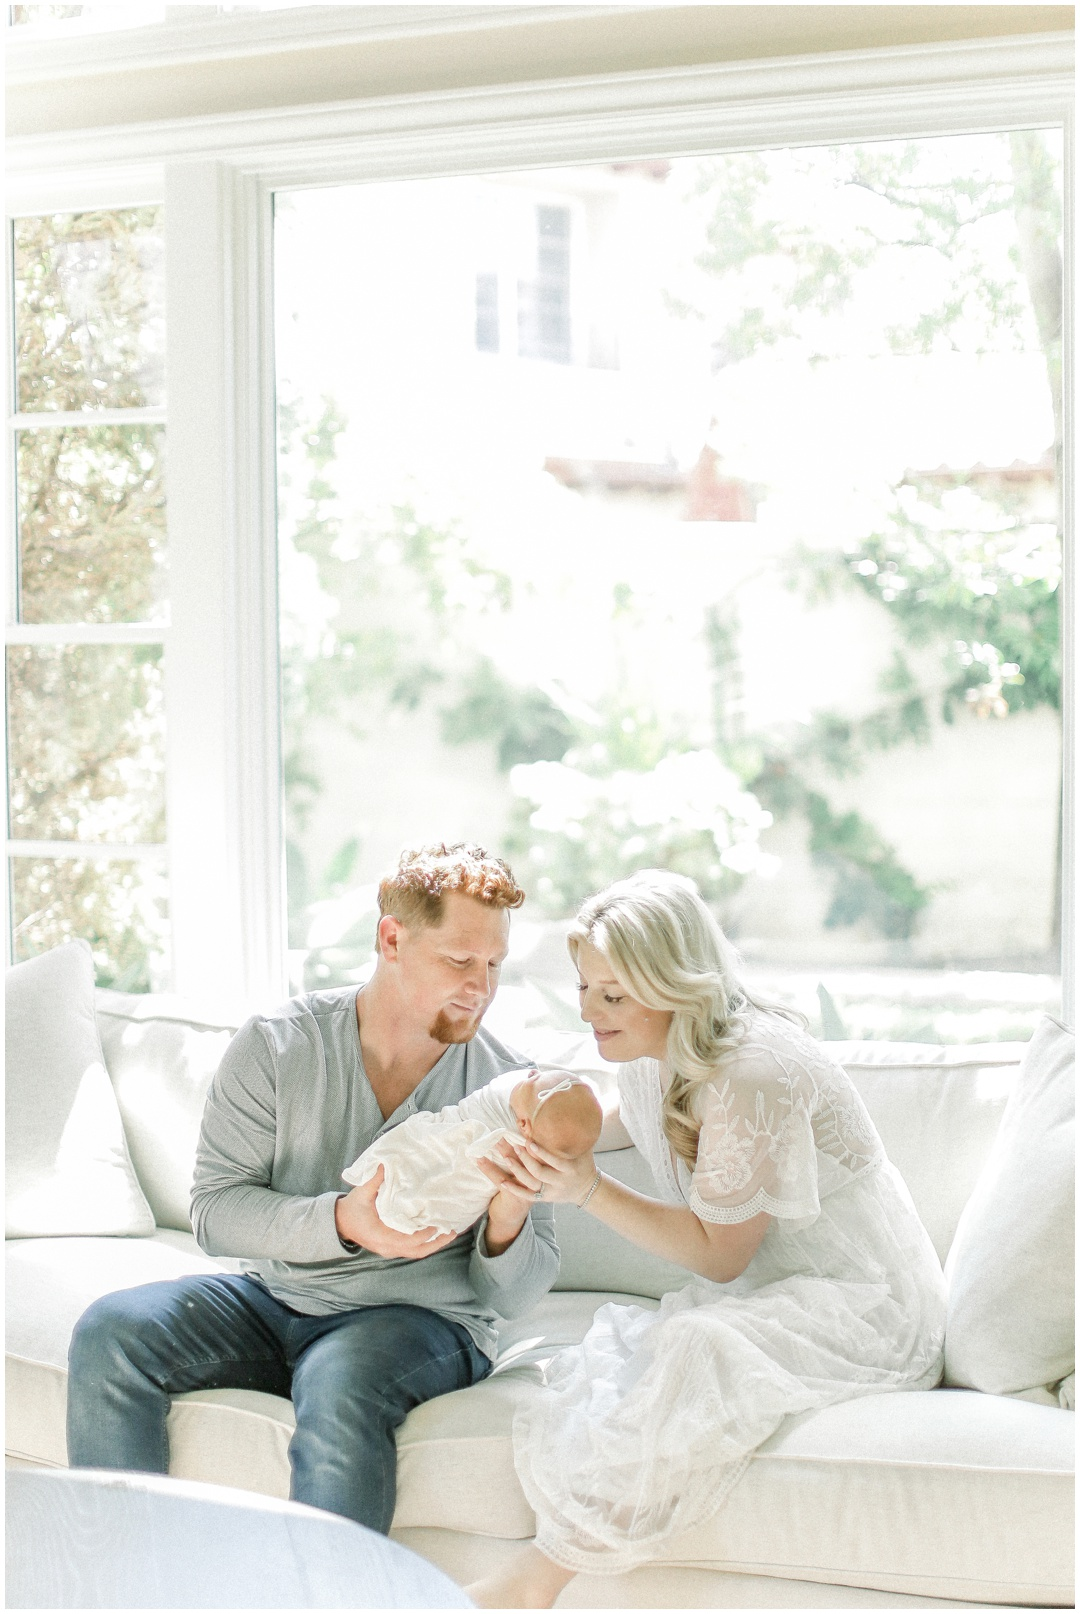 Newport_Beach_Newborn_Light_Airy_Natural_Photographer_Newport_Beach_Photographer_Orange_County_Family_Photographer_Cori_Kleckner_Photography_Newport_Beach_Photographer_newborn_kole_calhoun56_kole_calhoun_Jennifer_Calhoun_Knox_Calhoun_3797.jpg